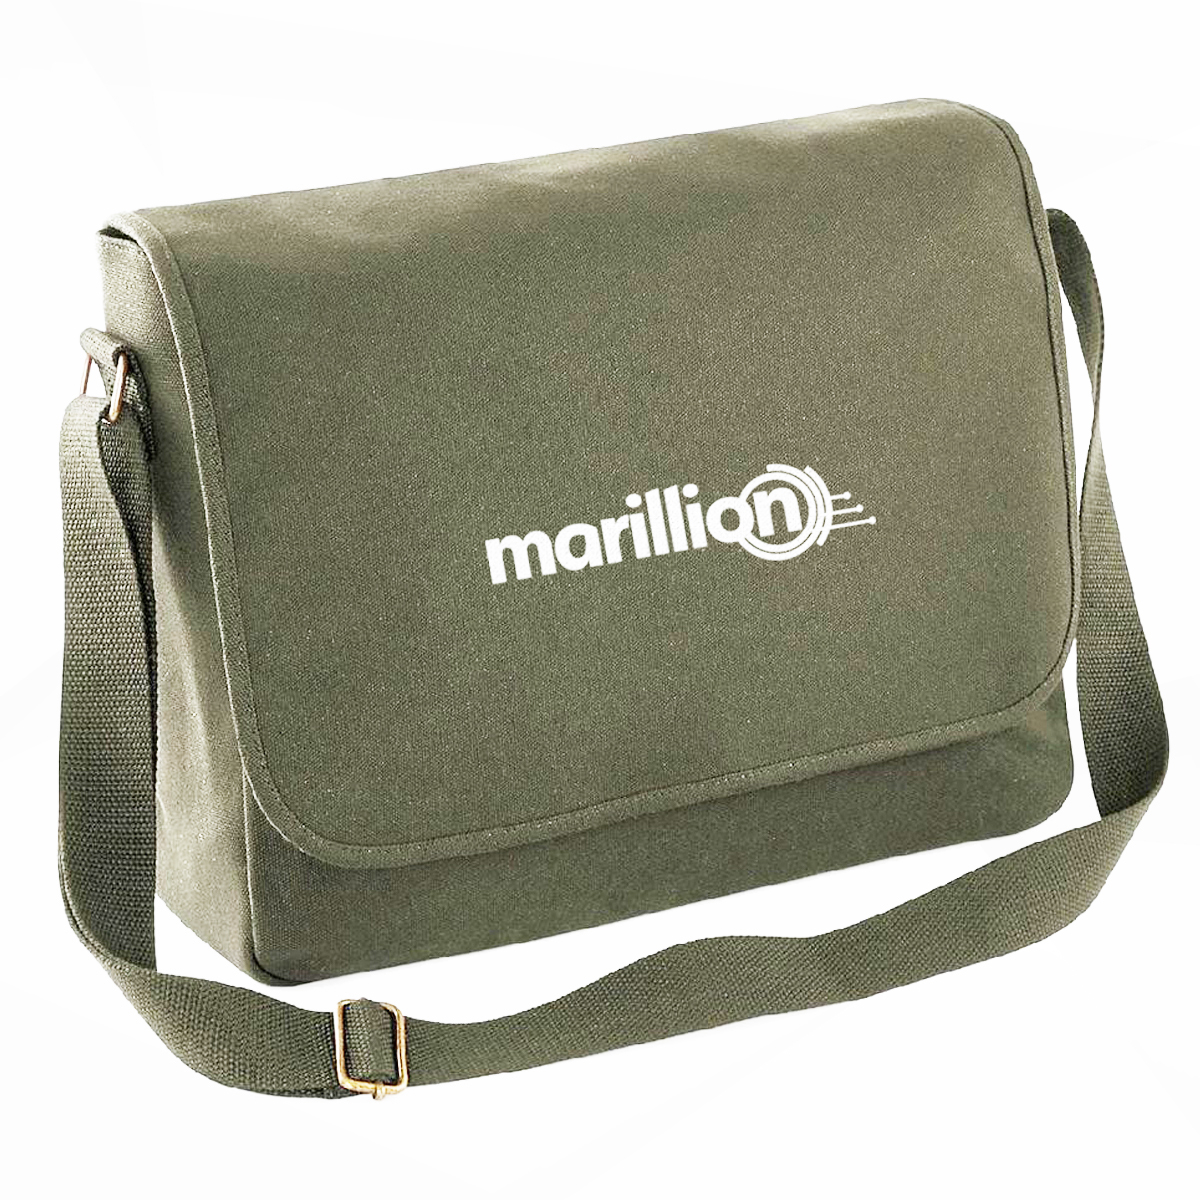 MARILLION CANVAS MESSENGER BAG